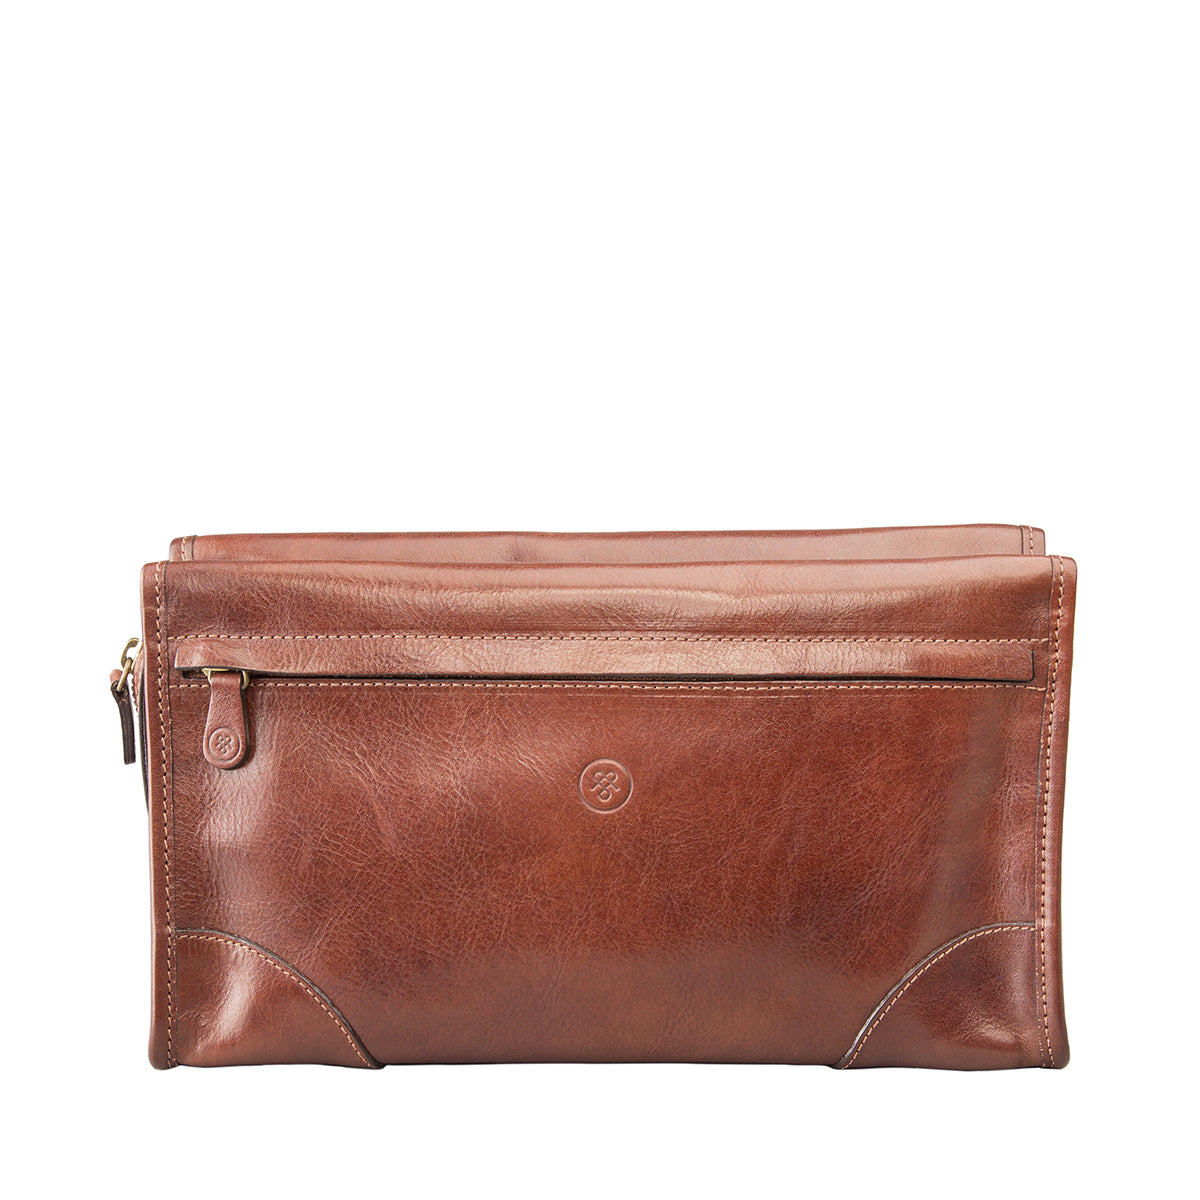 Image 1 of the 'Tanta' Chestnut Veg-Tanned Leather Wash Bag